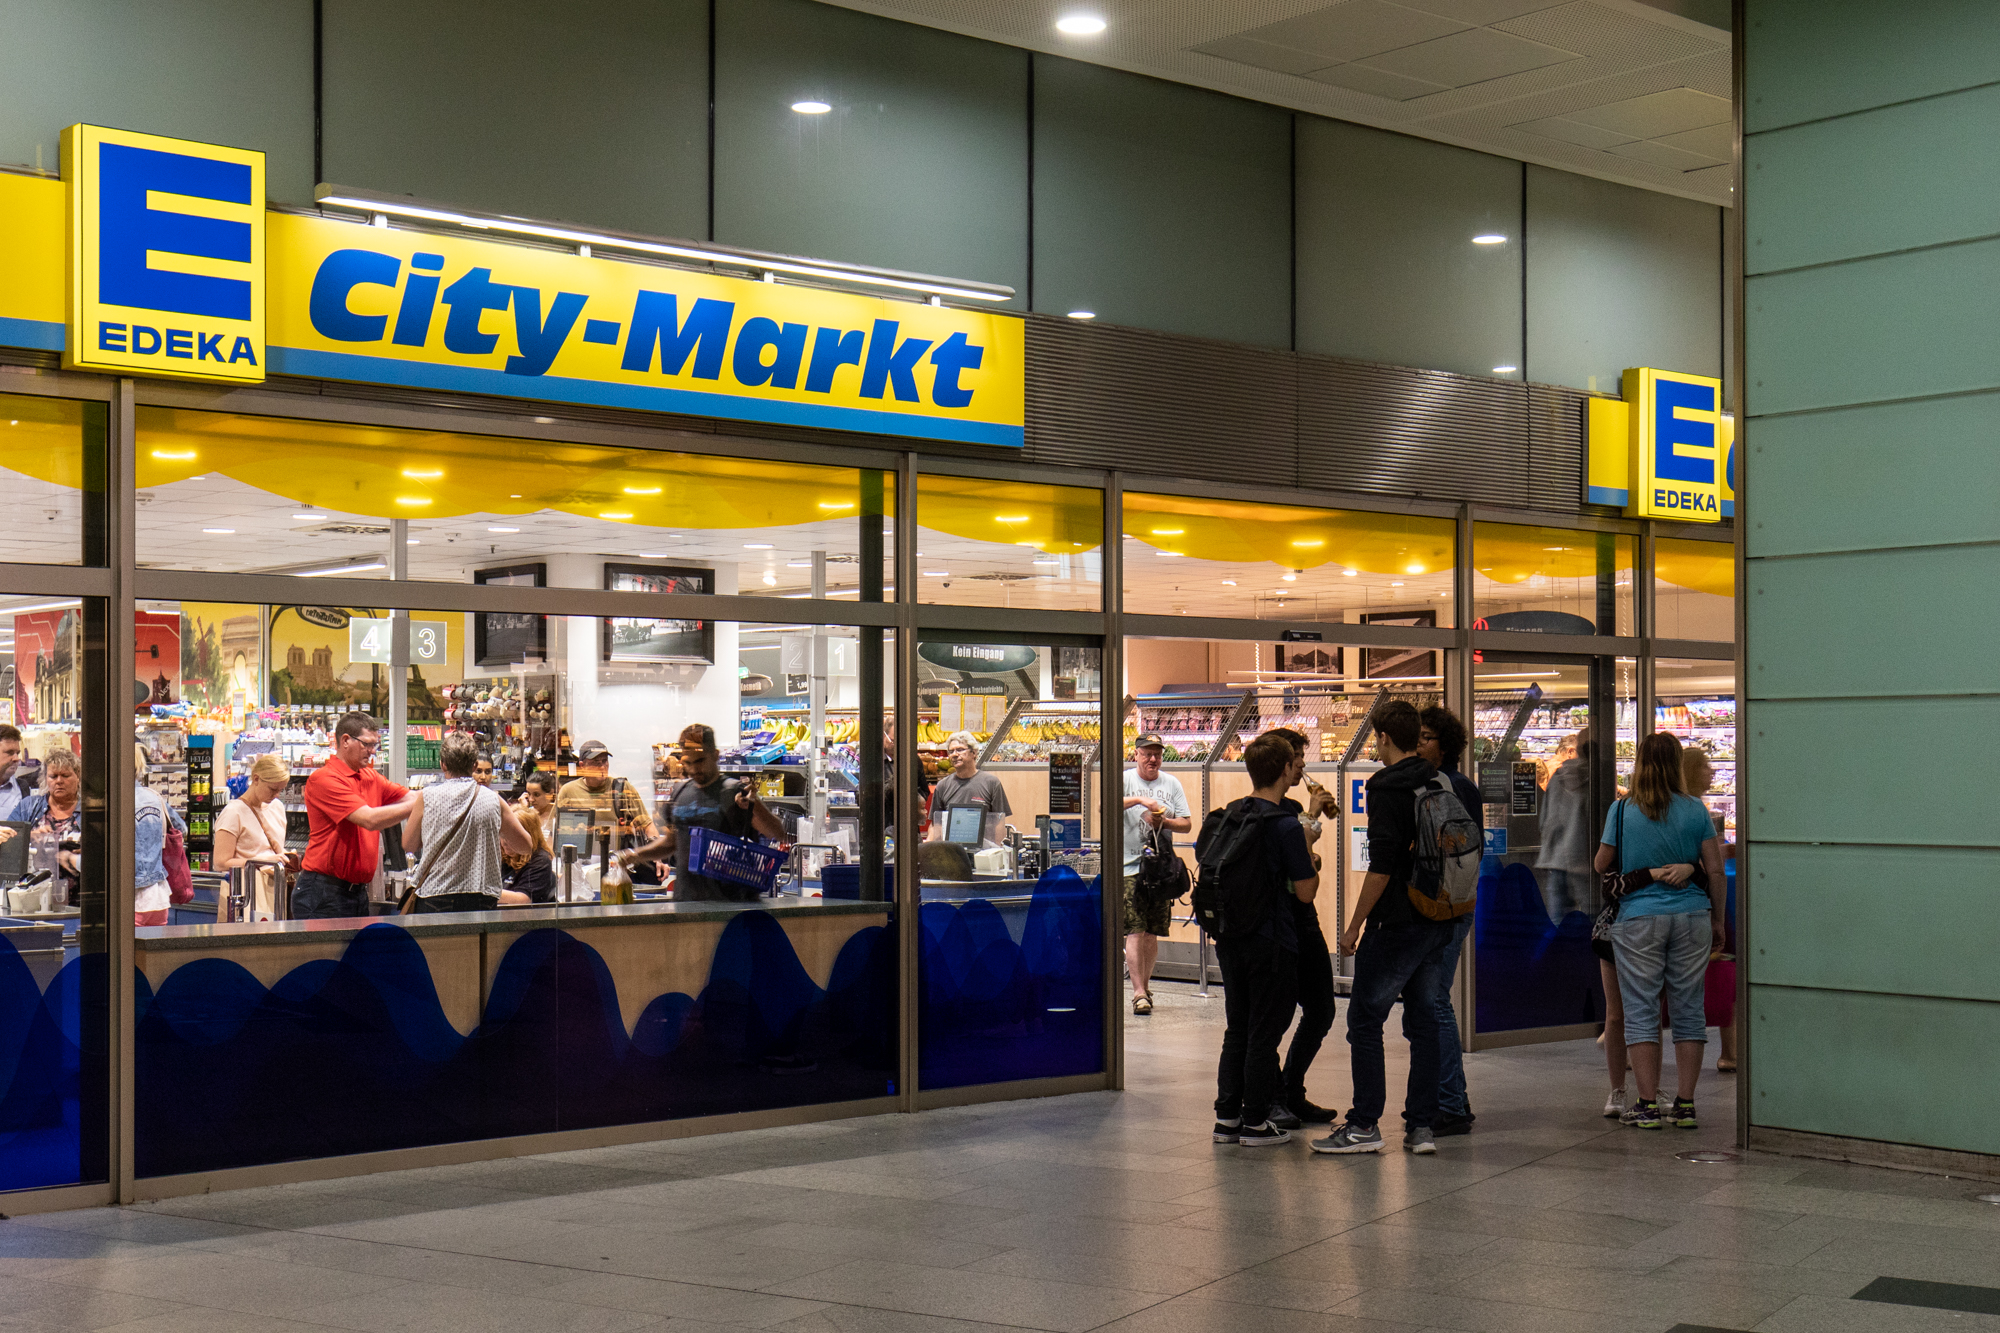 Edeka Friedrichstrasse - Supermarkets open Sundays in Berlin